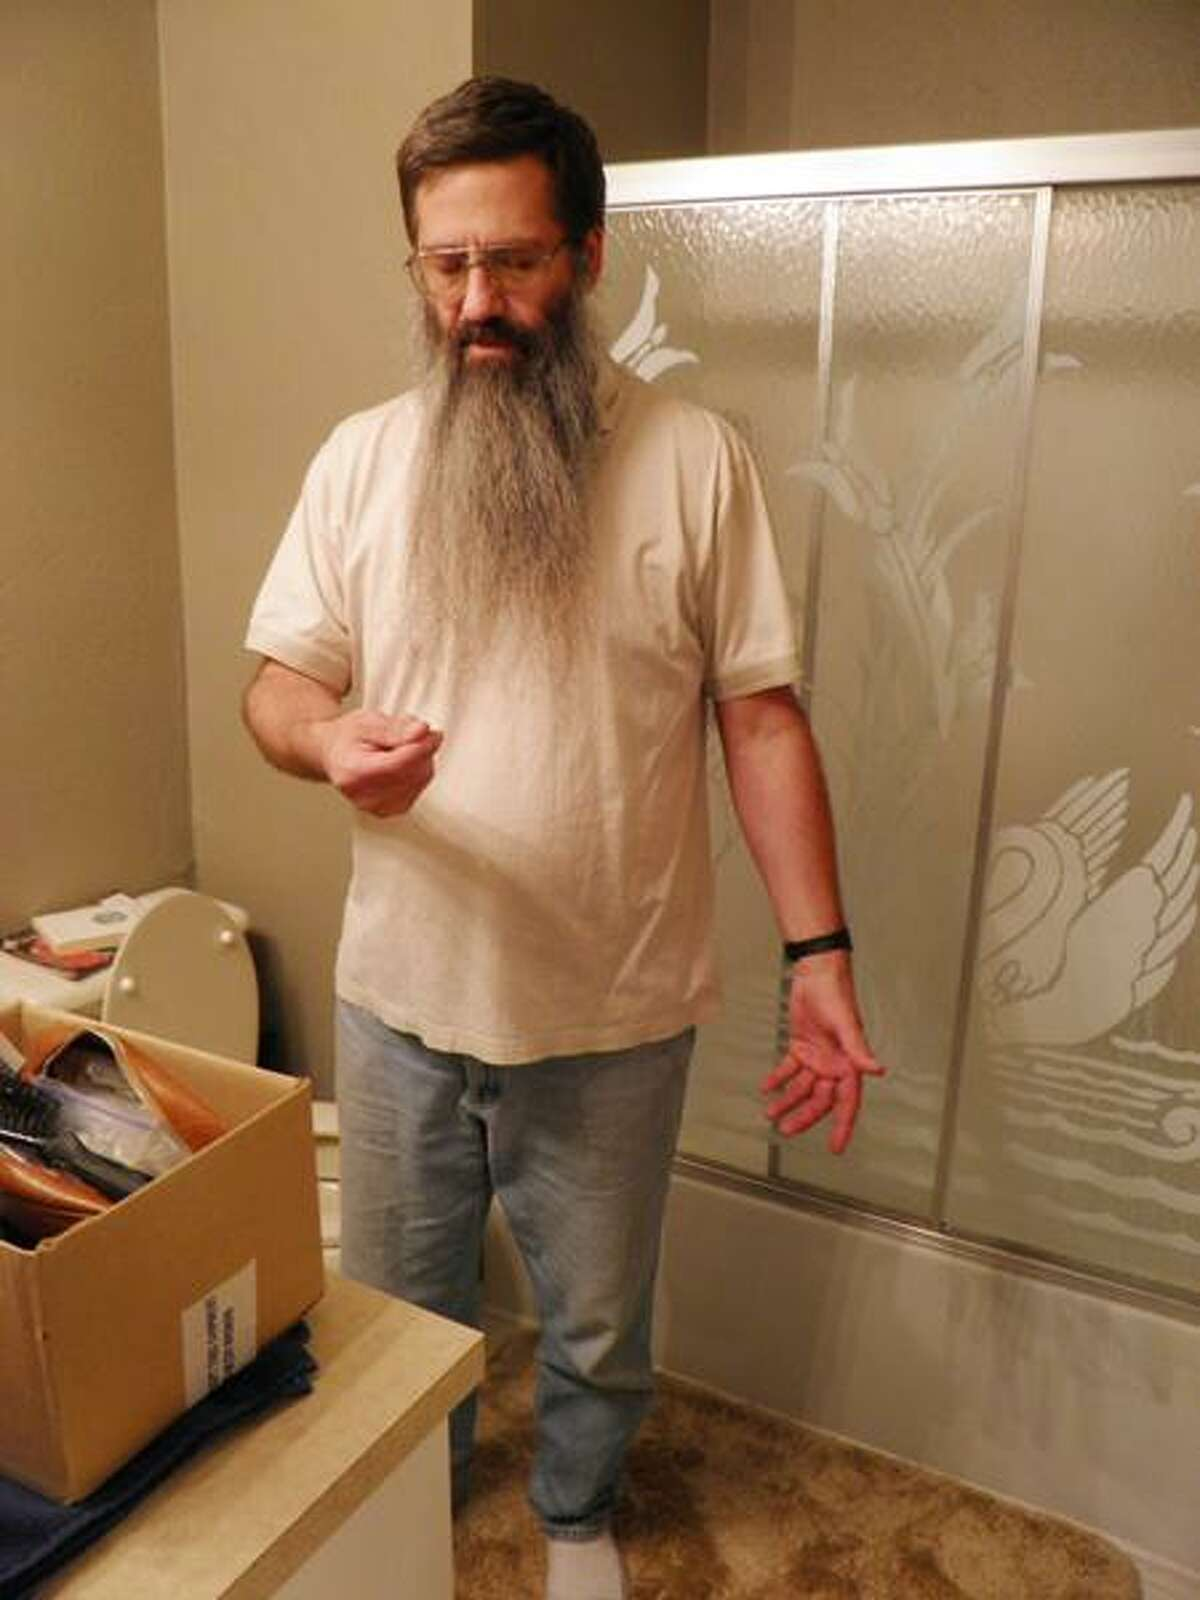 Gary Weddle is photographed minutes before he shaves his beard Sunday at his East Wenatchee, Wash., home. He kept a vow made nearly 10 years ago not to shave until Osama bin Laden was caught or proven killed. Associated Press